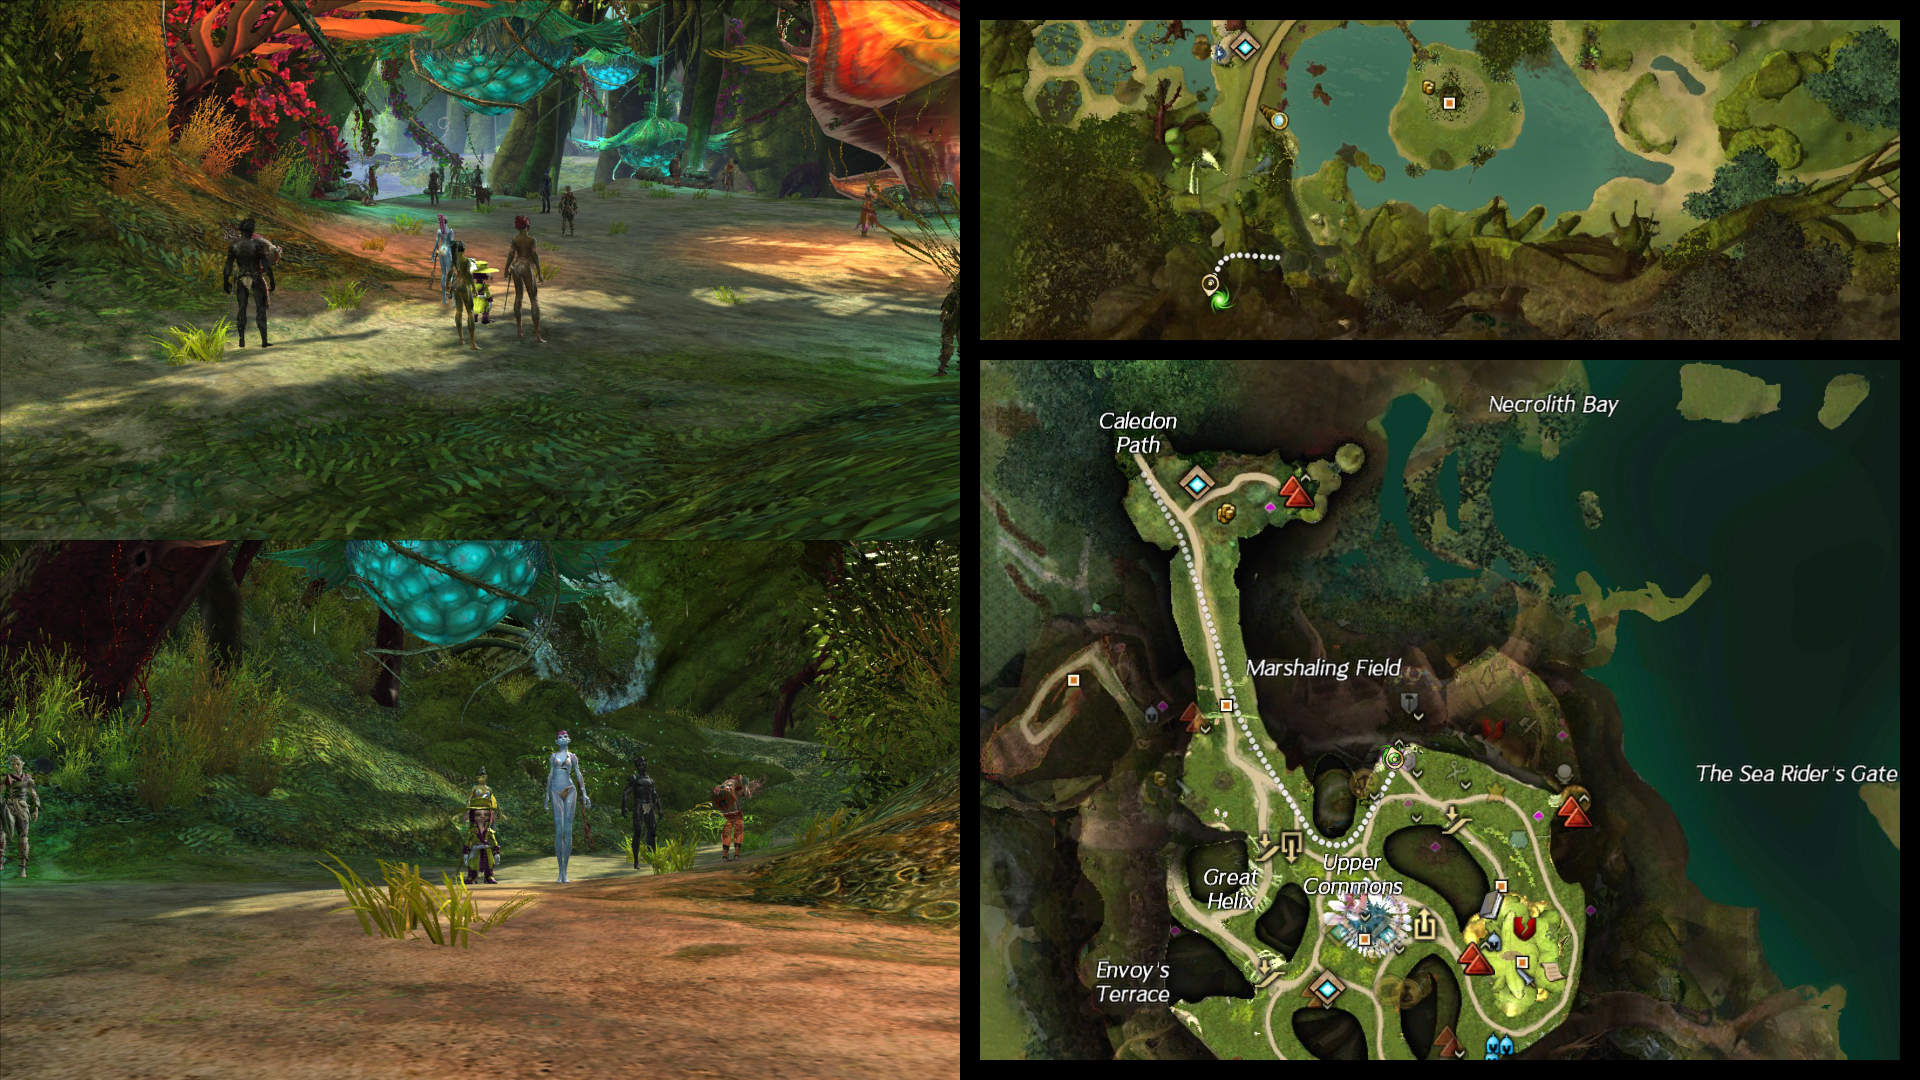 How to switch between the starter areas in Guild Wars 2 ... Caledon Forest Map on blue mountains forest map, gendarran fields map, caledonian forest map, lornar's pass map, rata sum map, sparkfly fen map, ad d city map, iron marches map, ruins of orr map, timberline falls map, kessex hills map, winter wonderland map, brisban wildlands map, guild wars map, fireheart rise map, canada forest map, malchor's leap map, ontario forest map, straits of devastation map,